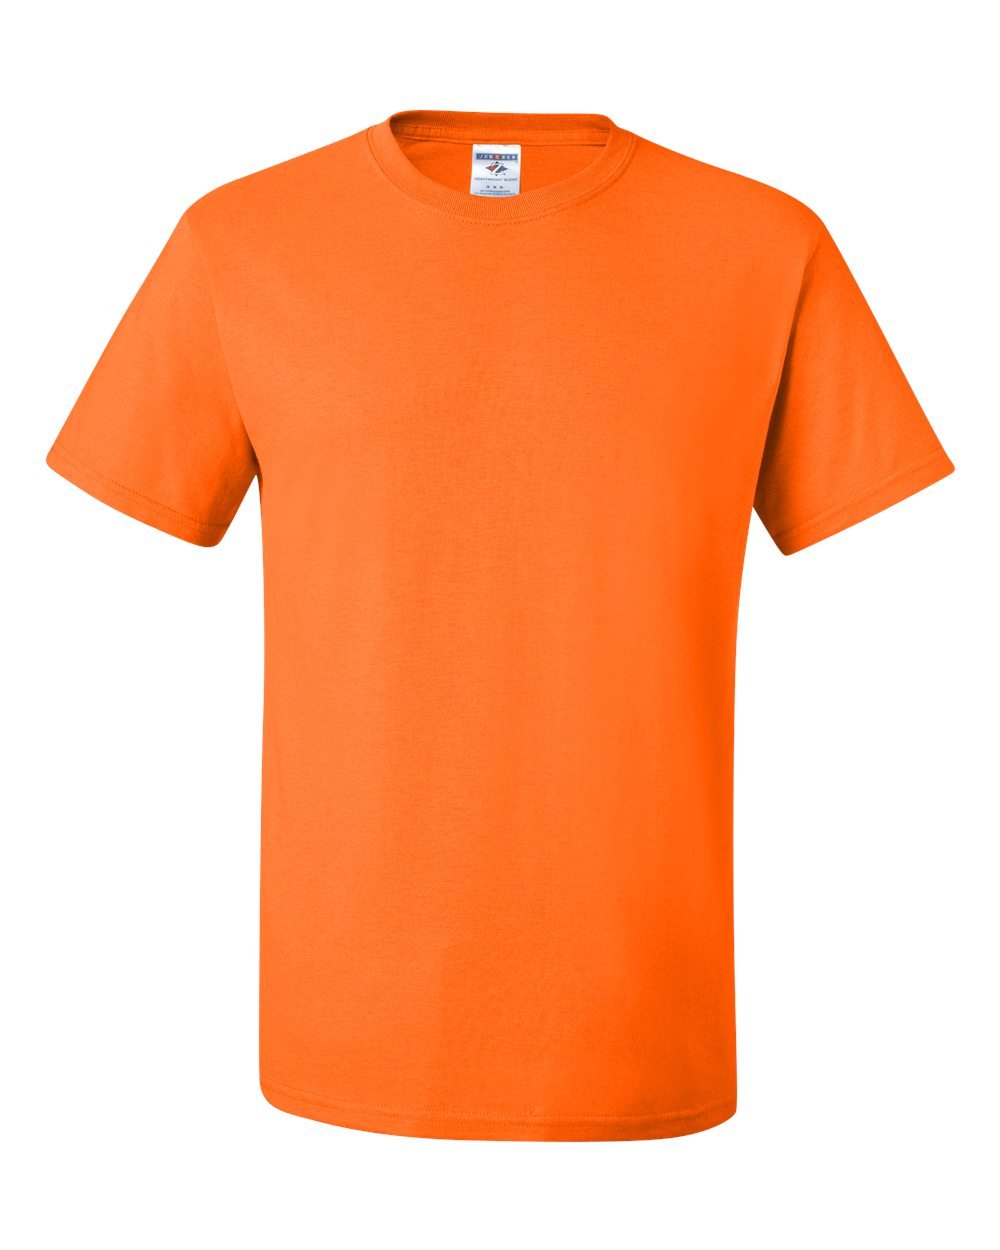 Jerzees mens 5.6 oz. 50/50 Heavyweight Blend T-Shirt(29M)-SAFETY ORANGE-5XL-3PK